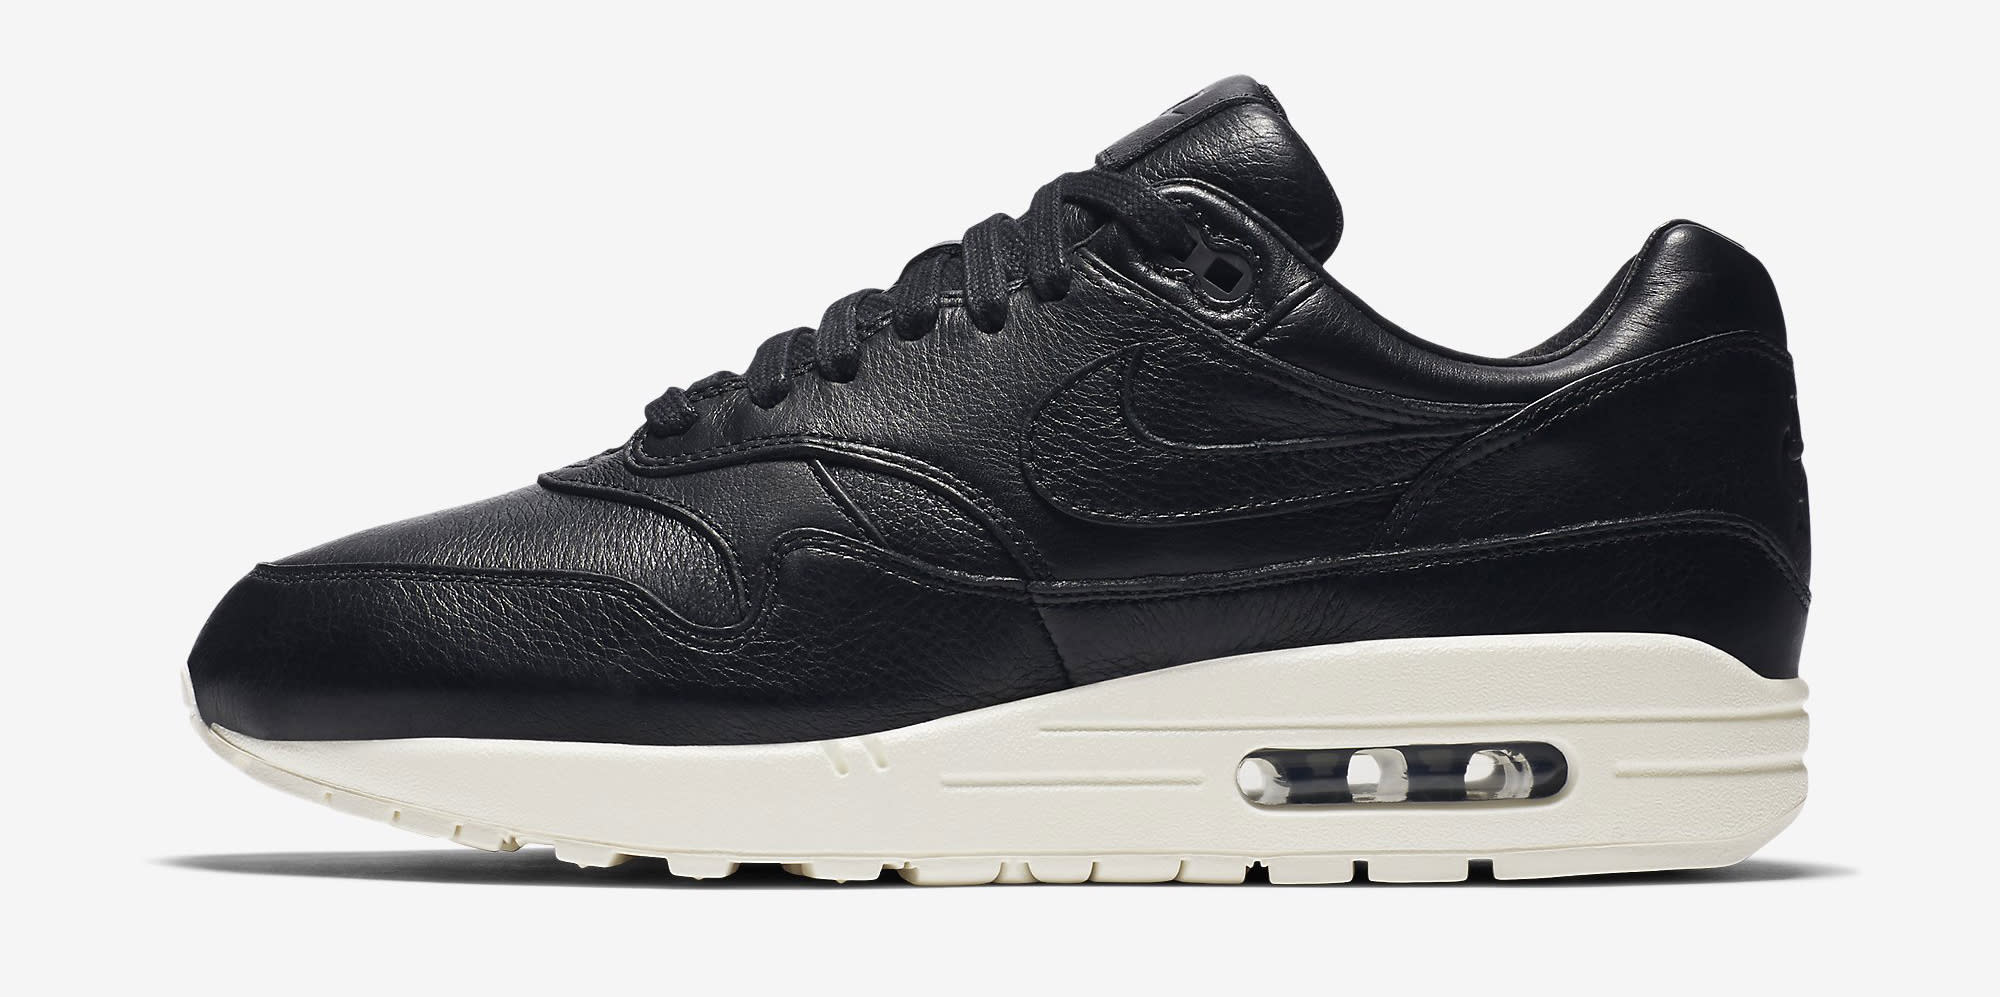 info for d3af2 2ec66 Nike Air Max 1 Pinnacle Leather Black 859554-003 Profile